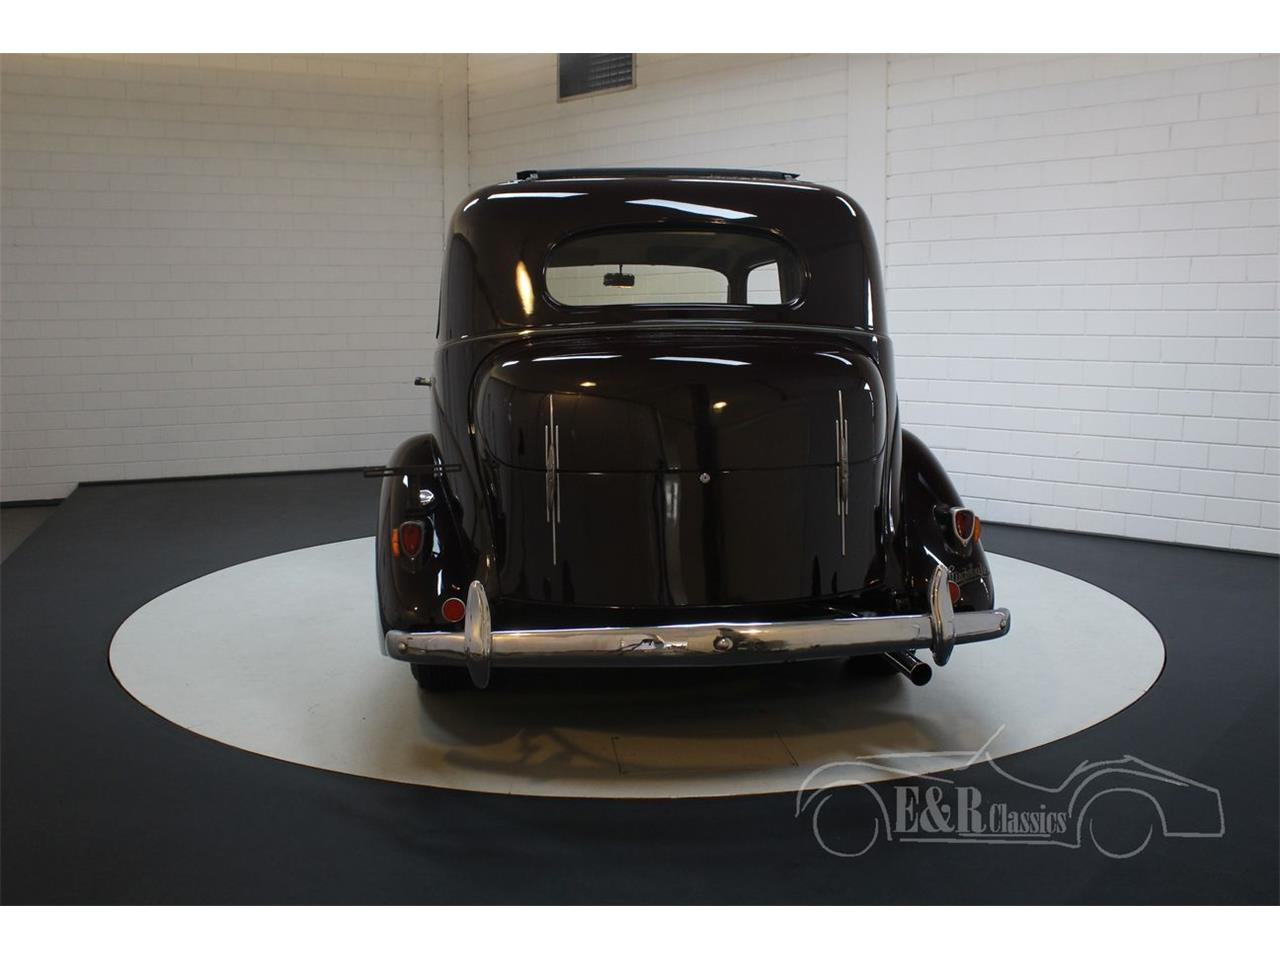 Large Picture of 1935 Dictator located in Waalwijk noord brabant - $33,800.00 Offered by E & R Classics - QJ2R